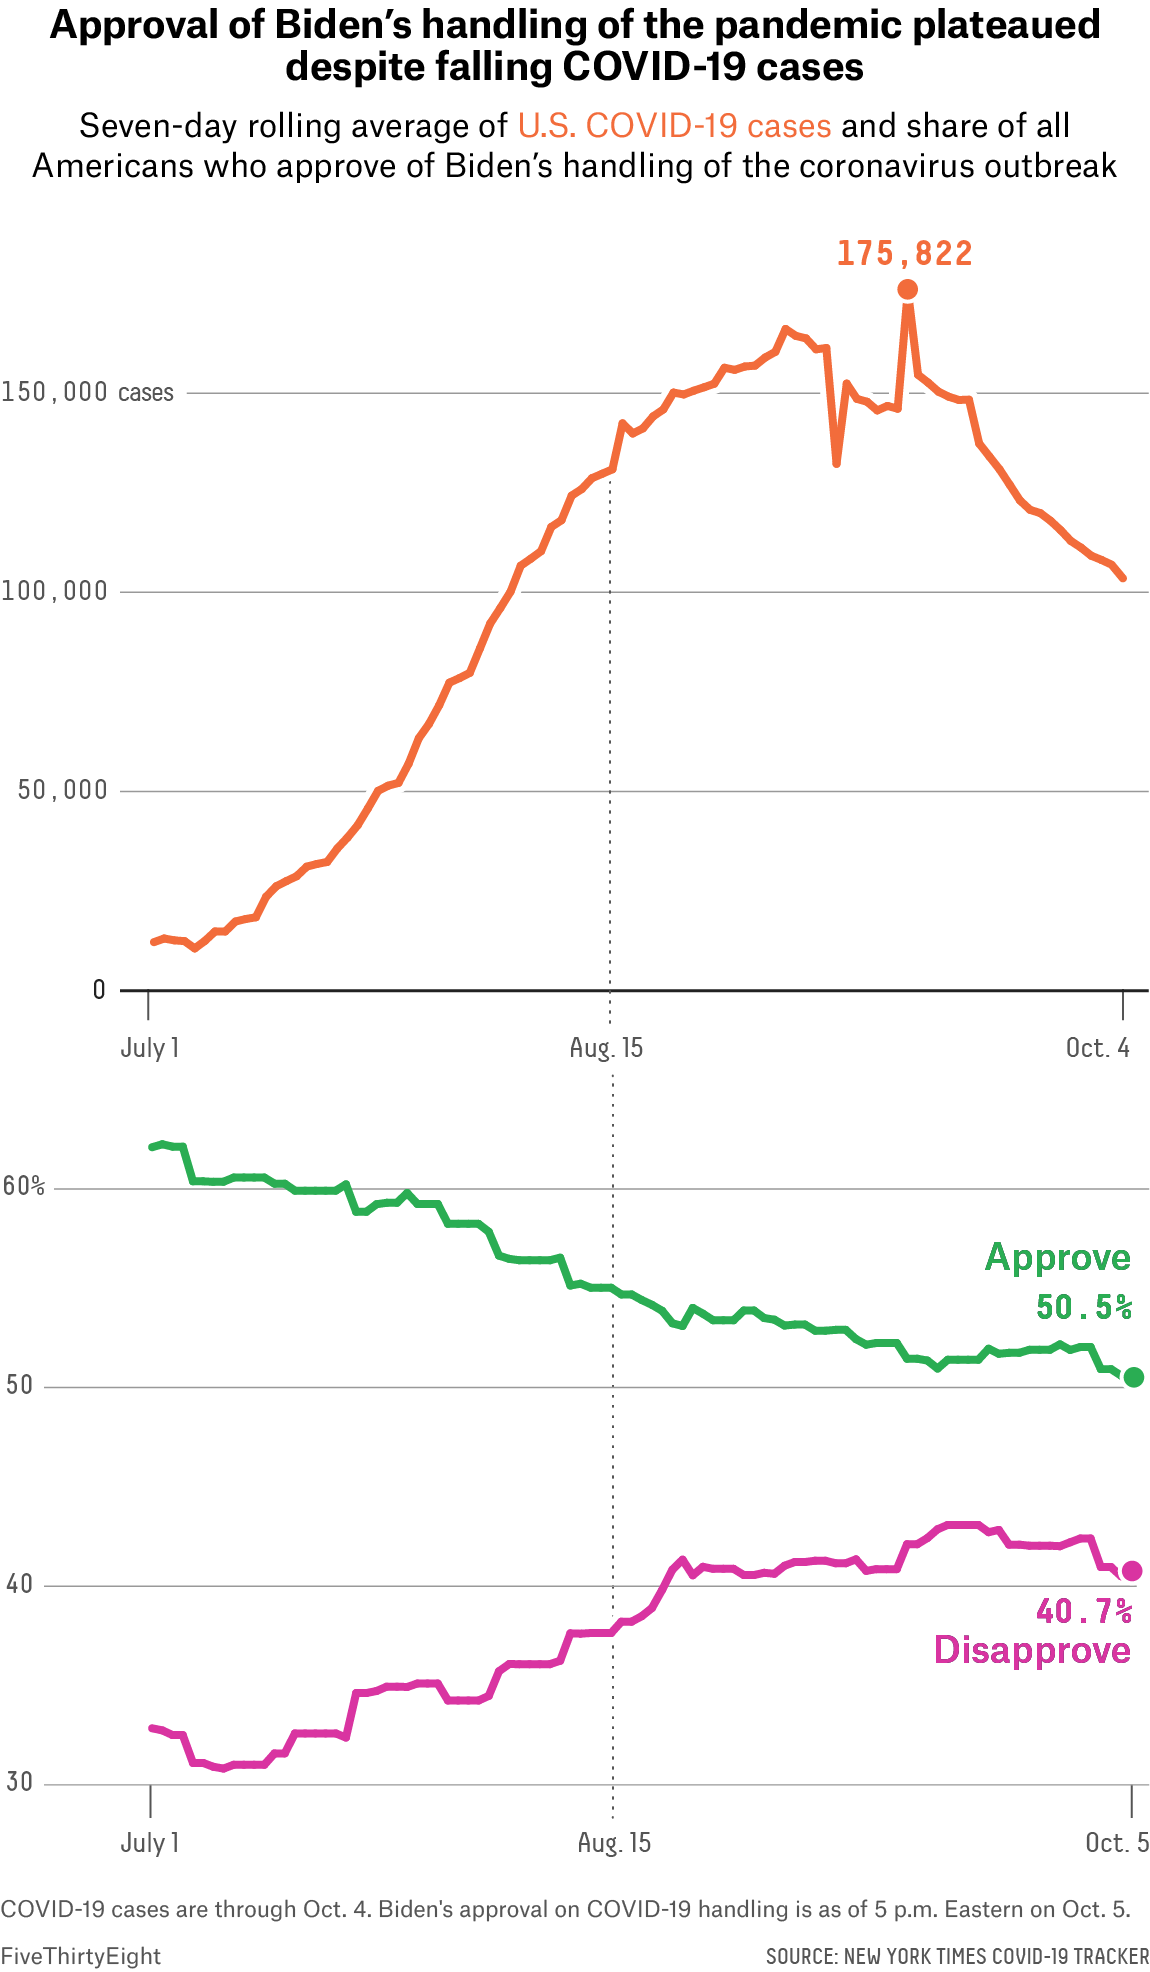 A line chart showing the seven-day rolling average of U.S. COVID-19 cases rising from July 1 and peaking mid-September. A line chart showing two lines for the share of Americans who approve and disapprove of Biden's handling of the pandemic. Biden's approval rating steadily decreases, while his disapproval rating steadily increases from July through the beginning of October.